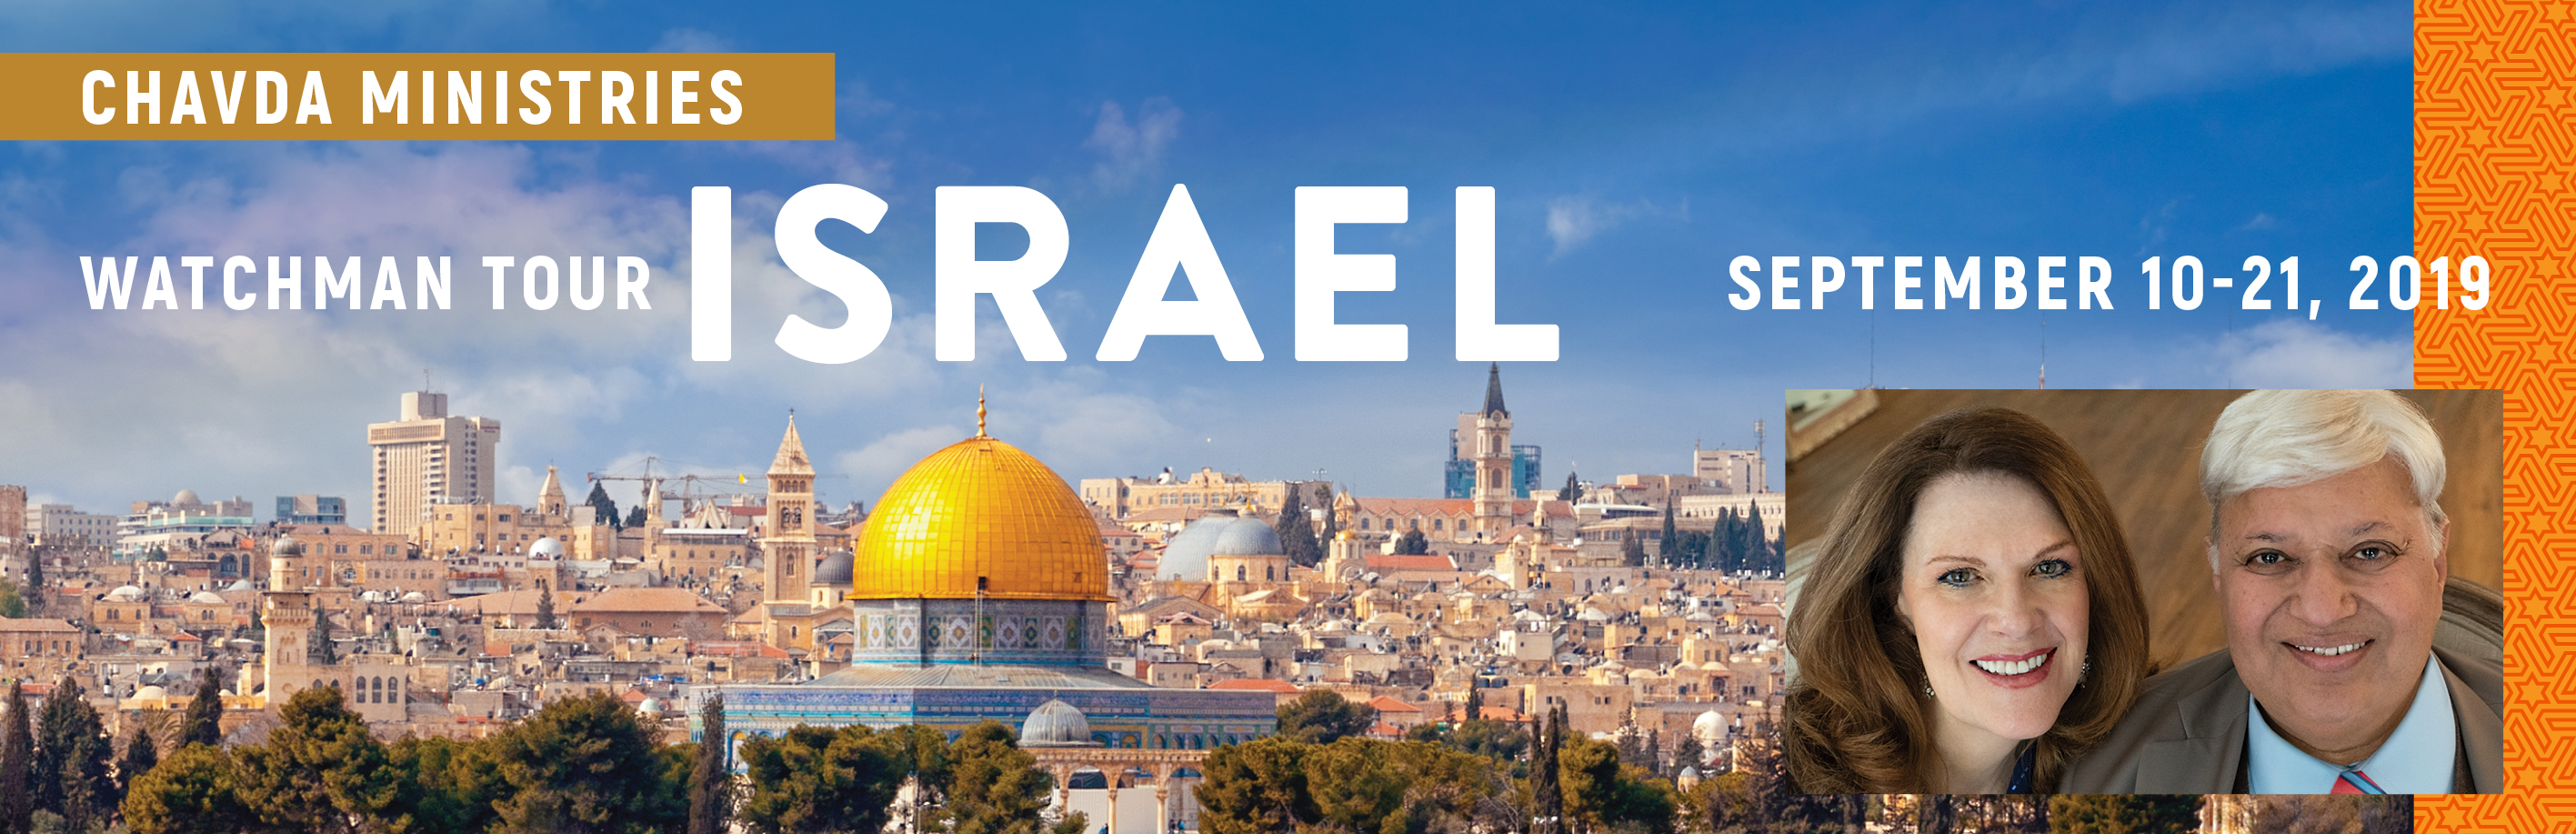 Take a Christian TourWOX with Chavda Ministries - Israel Tour - September 10 - 21, 2019